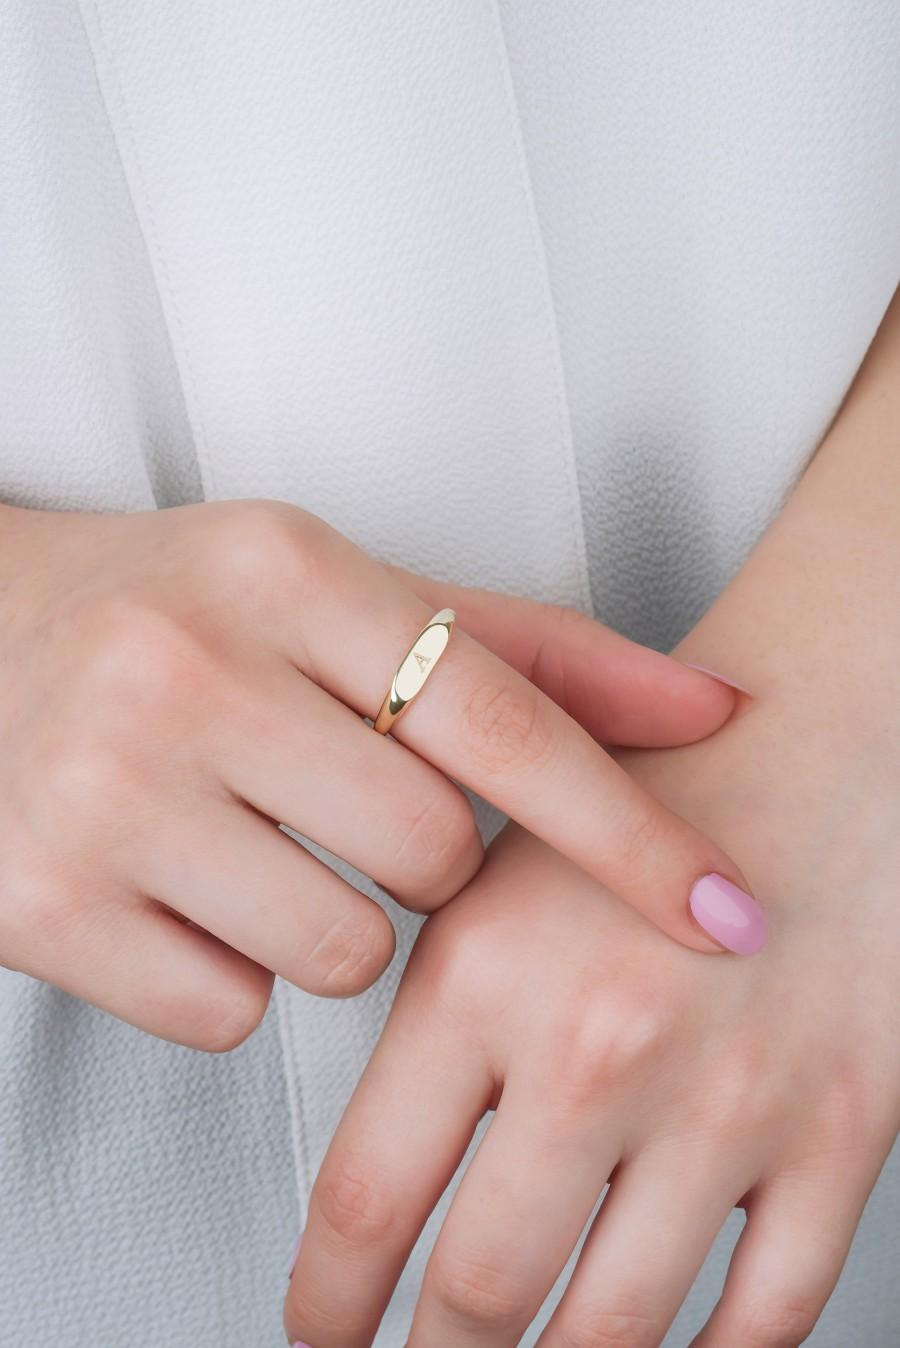 Wedding - Personalized Ring, 14K Gold Plated Ring, Letter Ring, Initial Gold Jewelry, Dainty Solid Gold Ring, Sterling Silver, Personalized Gift Ring